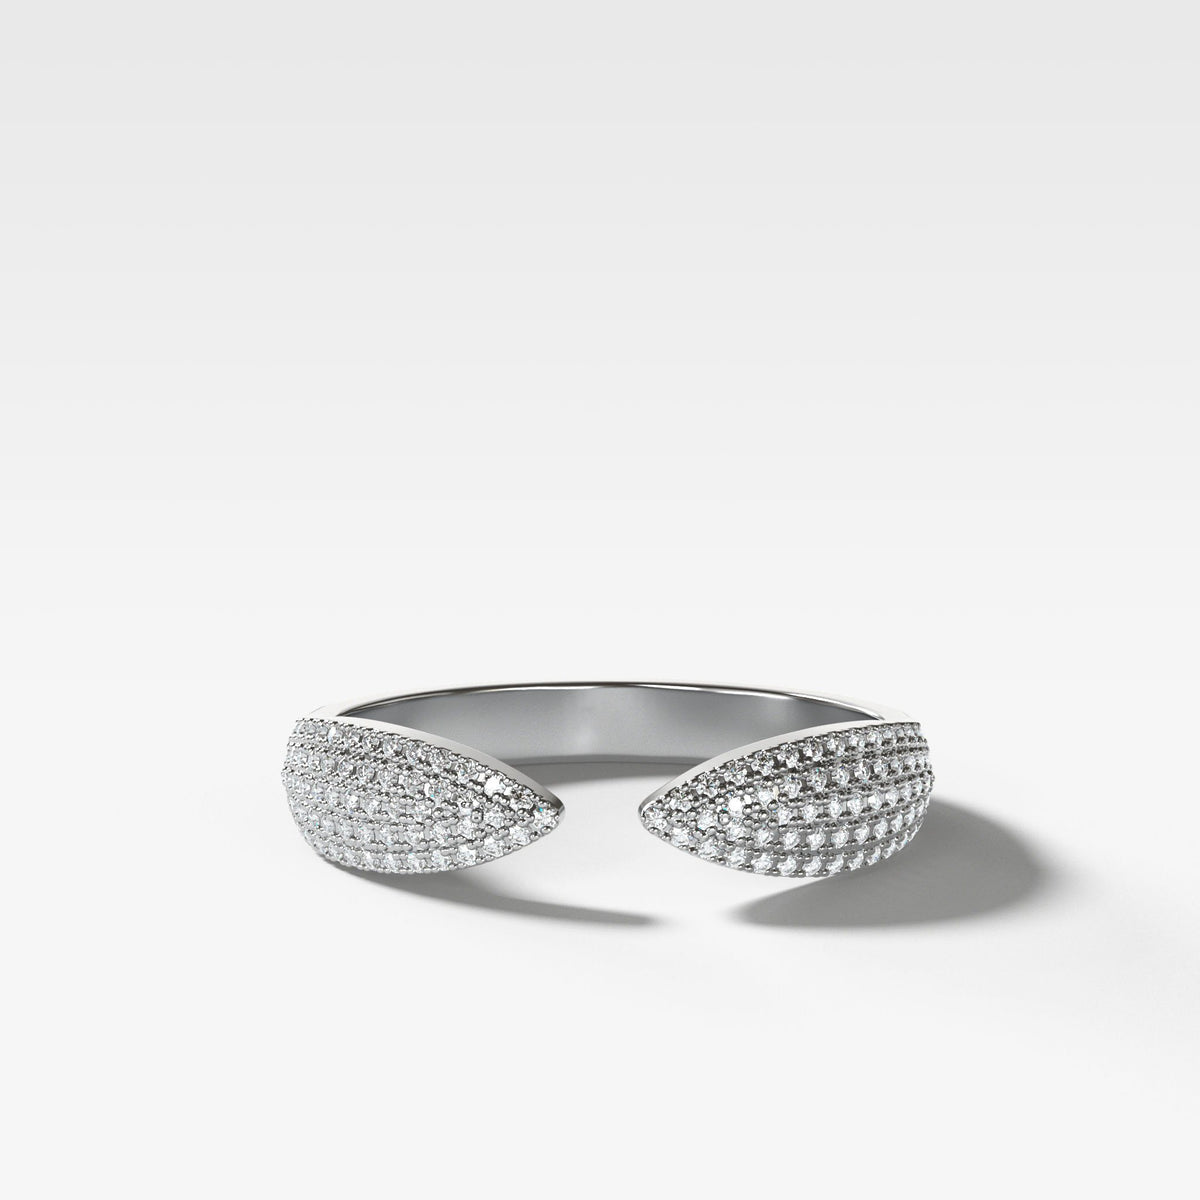 Pavé Finger Cuff Diamond Band available in White Gold by Good Stone